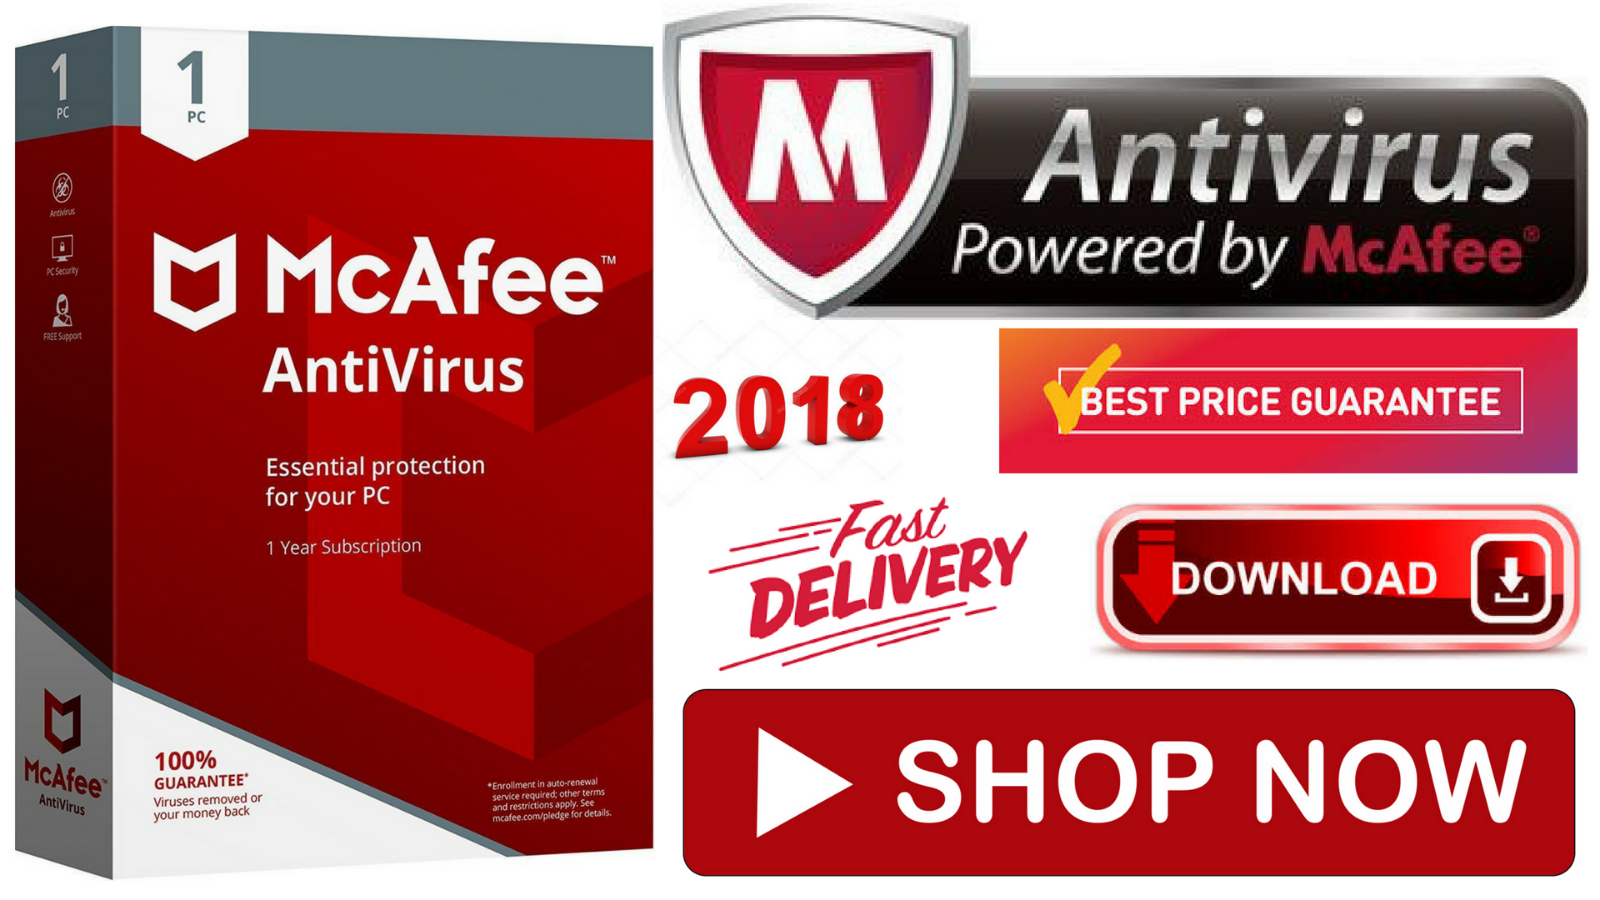 10 Best Antivirus Software For 2019 For Laptop And PCs